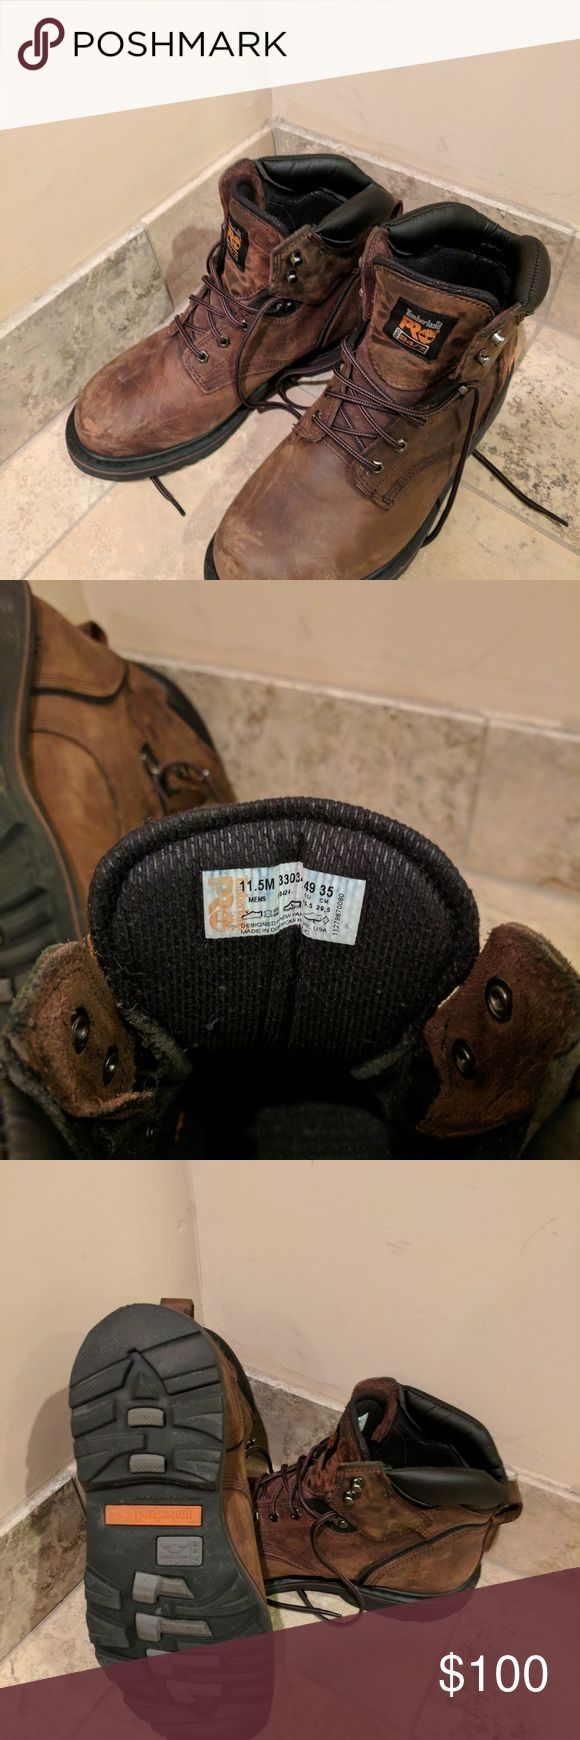 Timberland Pro Pit Boss steel toe boots Size 11.5 steel toe boots by timberland. Excellent condition, worn only a few times. Ended up being too small Timberland Shoes Boots